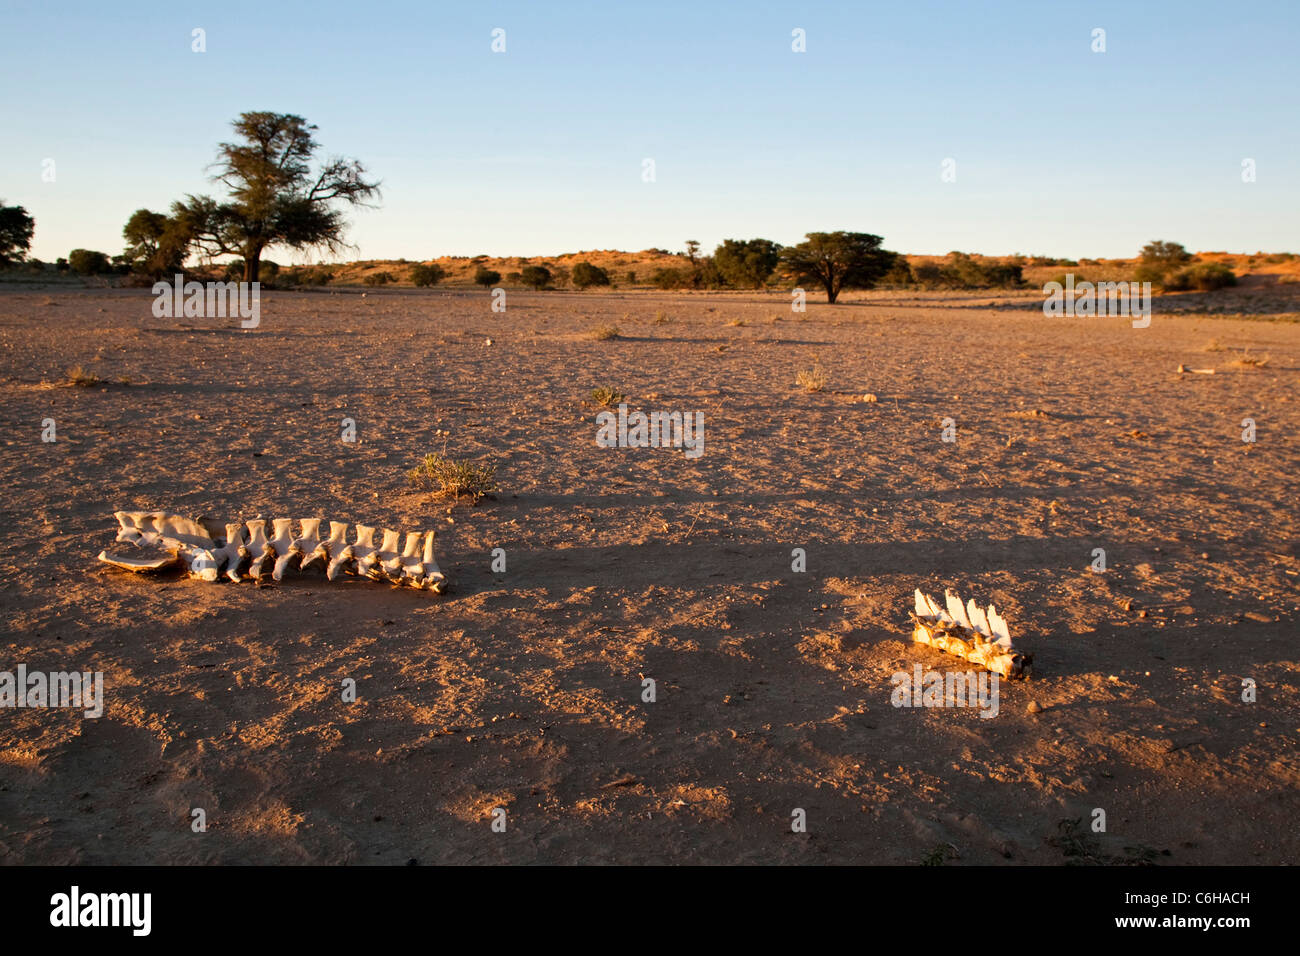 Bones in the dry Nossob riverbed - Stock Image